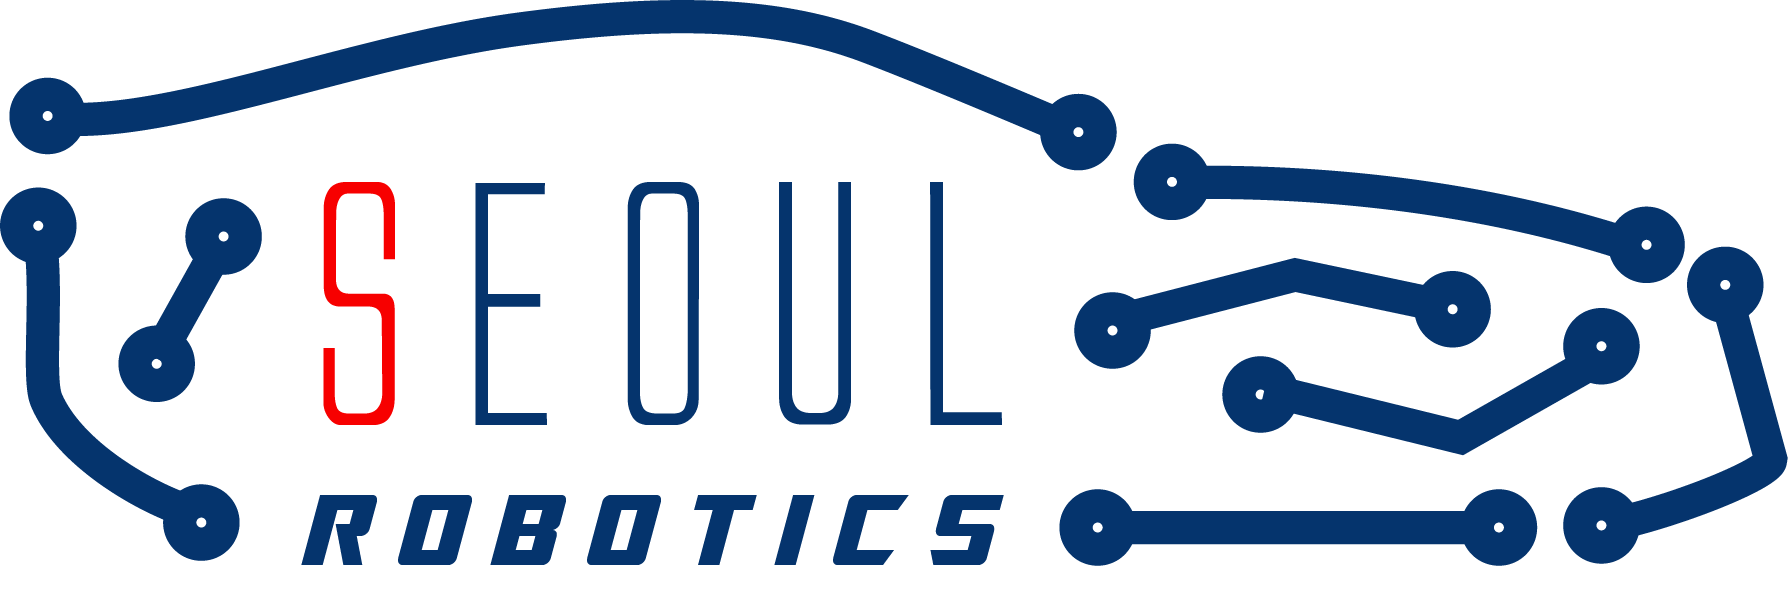 Logo for Seoul Robotics